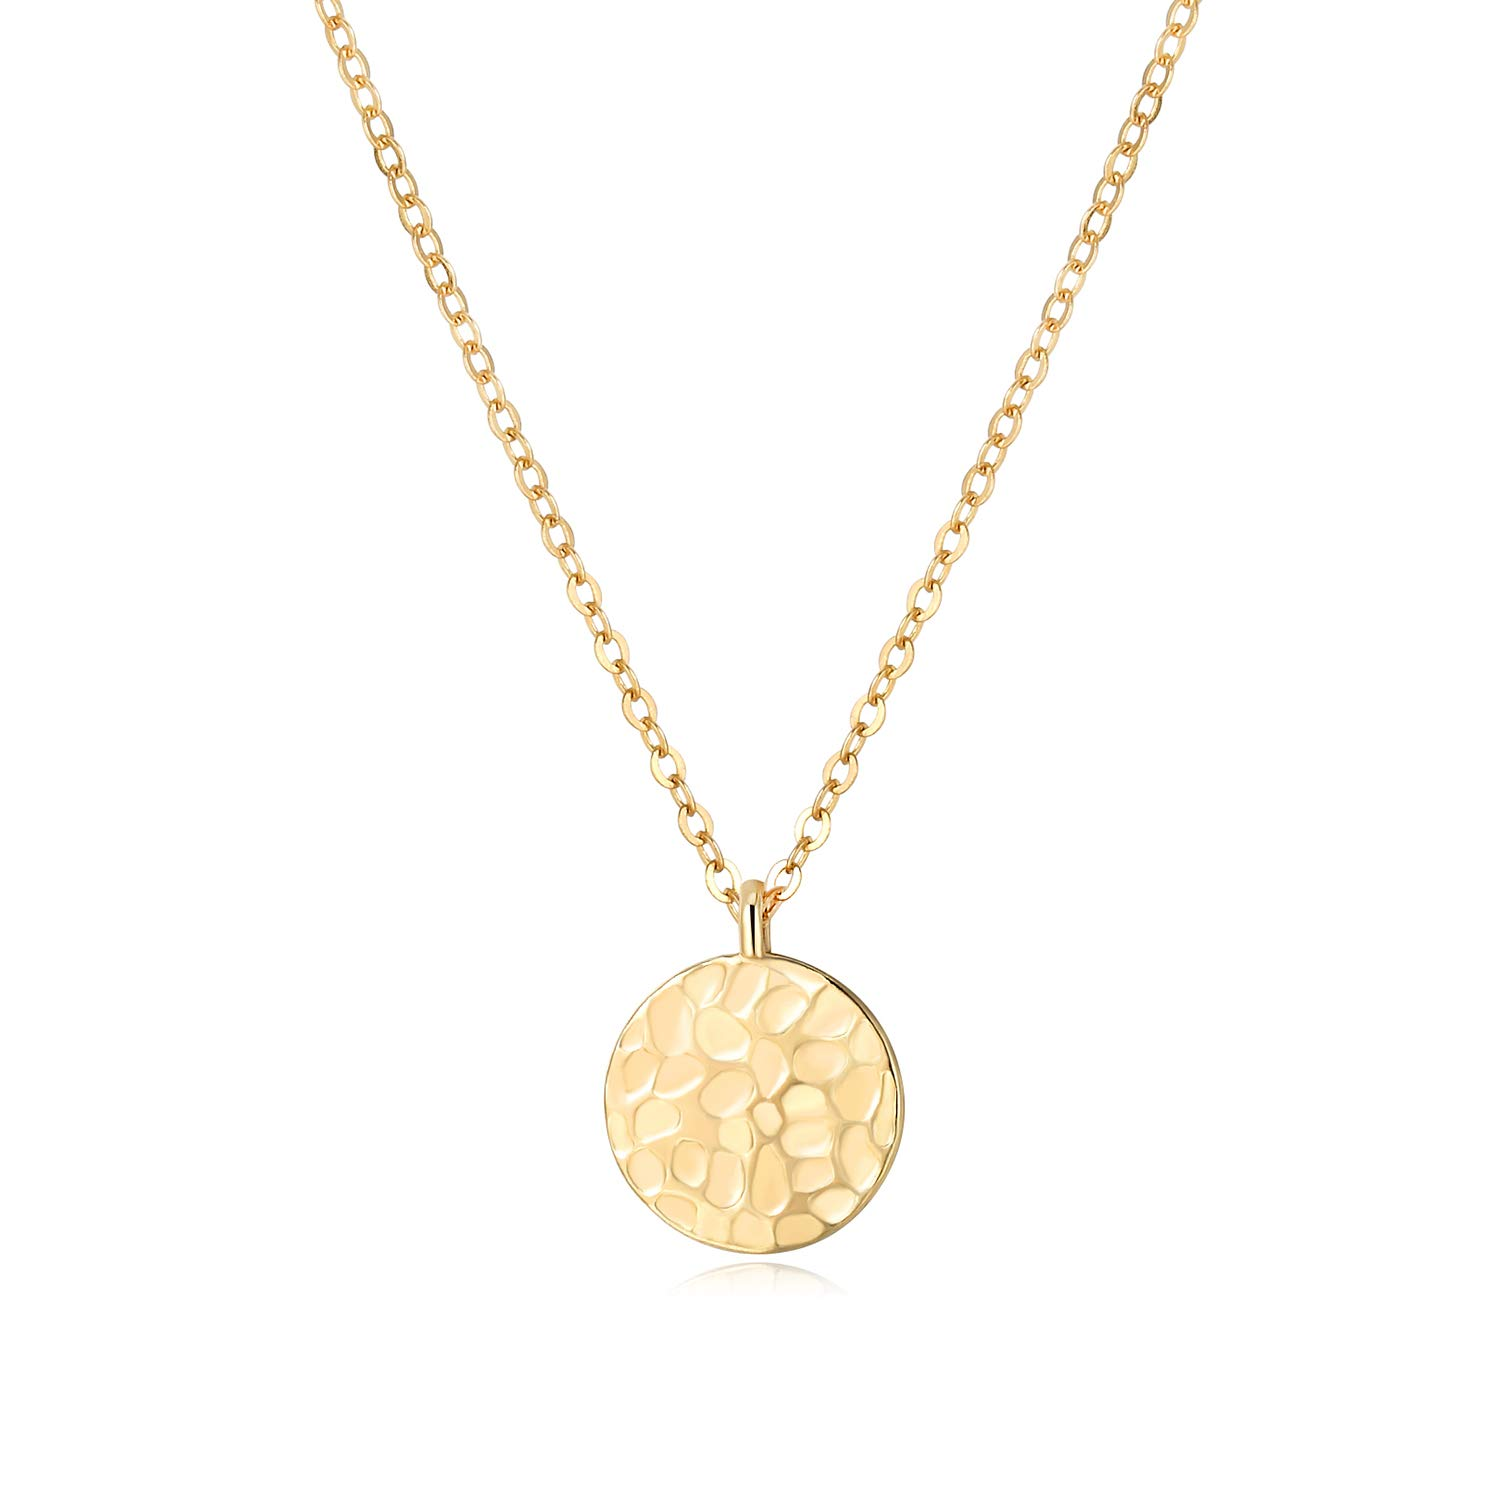 SEUSUK Moon Necklace Gold Pendant Dainty 14K Gold Fill Coin Disc Full Harvest Half Waning Waxing New Karma Circle Crescent Moon Phase Cute Delicate Handmade Hammered Simple Jewelry for Women Gift